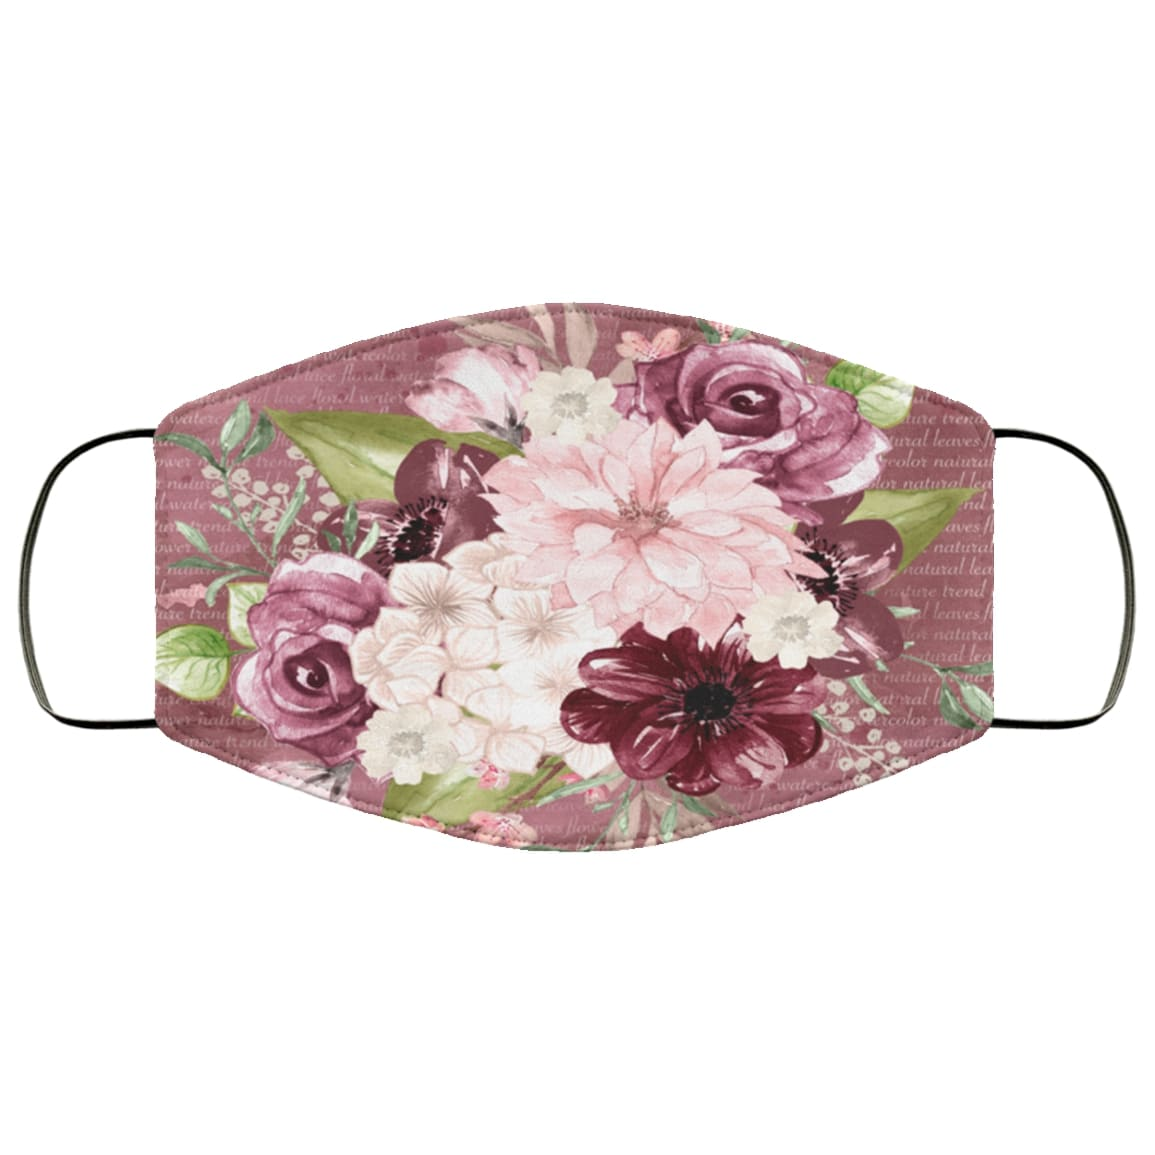 Spring flowers full over printed face mask 1